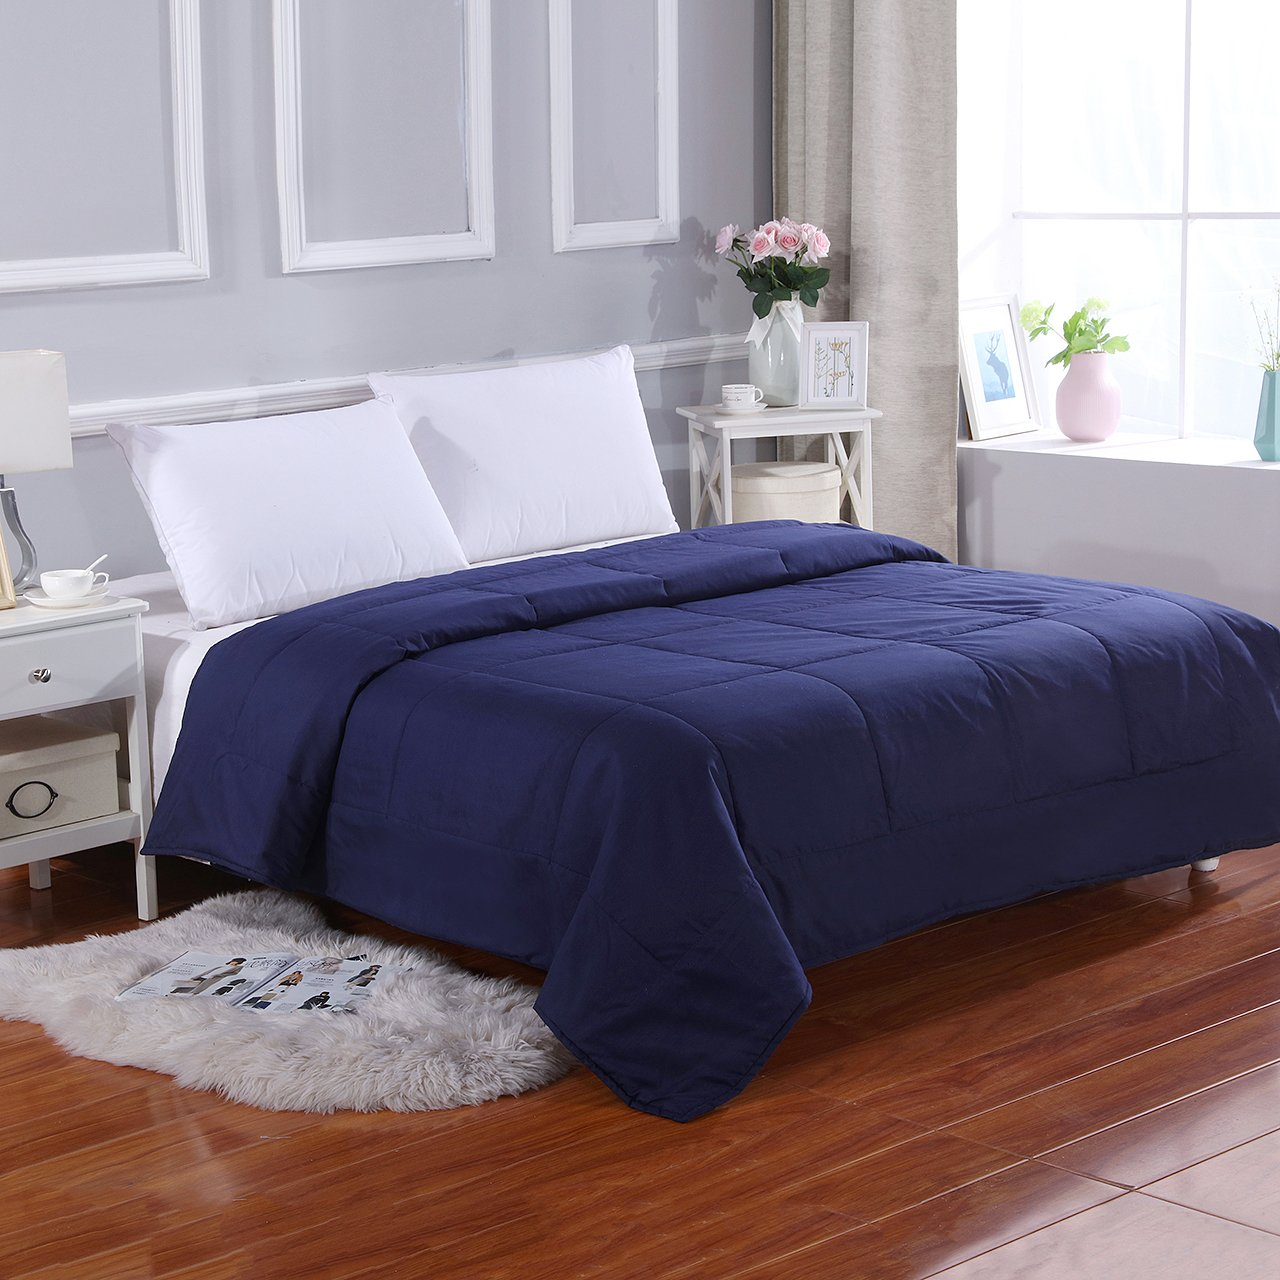 All Season Super Soft Microfiber Comforter Full/Queen Navy Blue by MELODY HOUSE